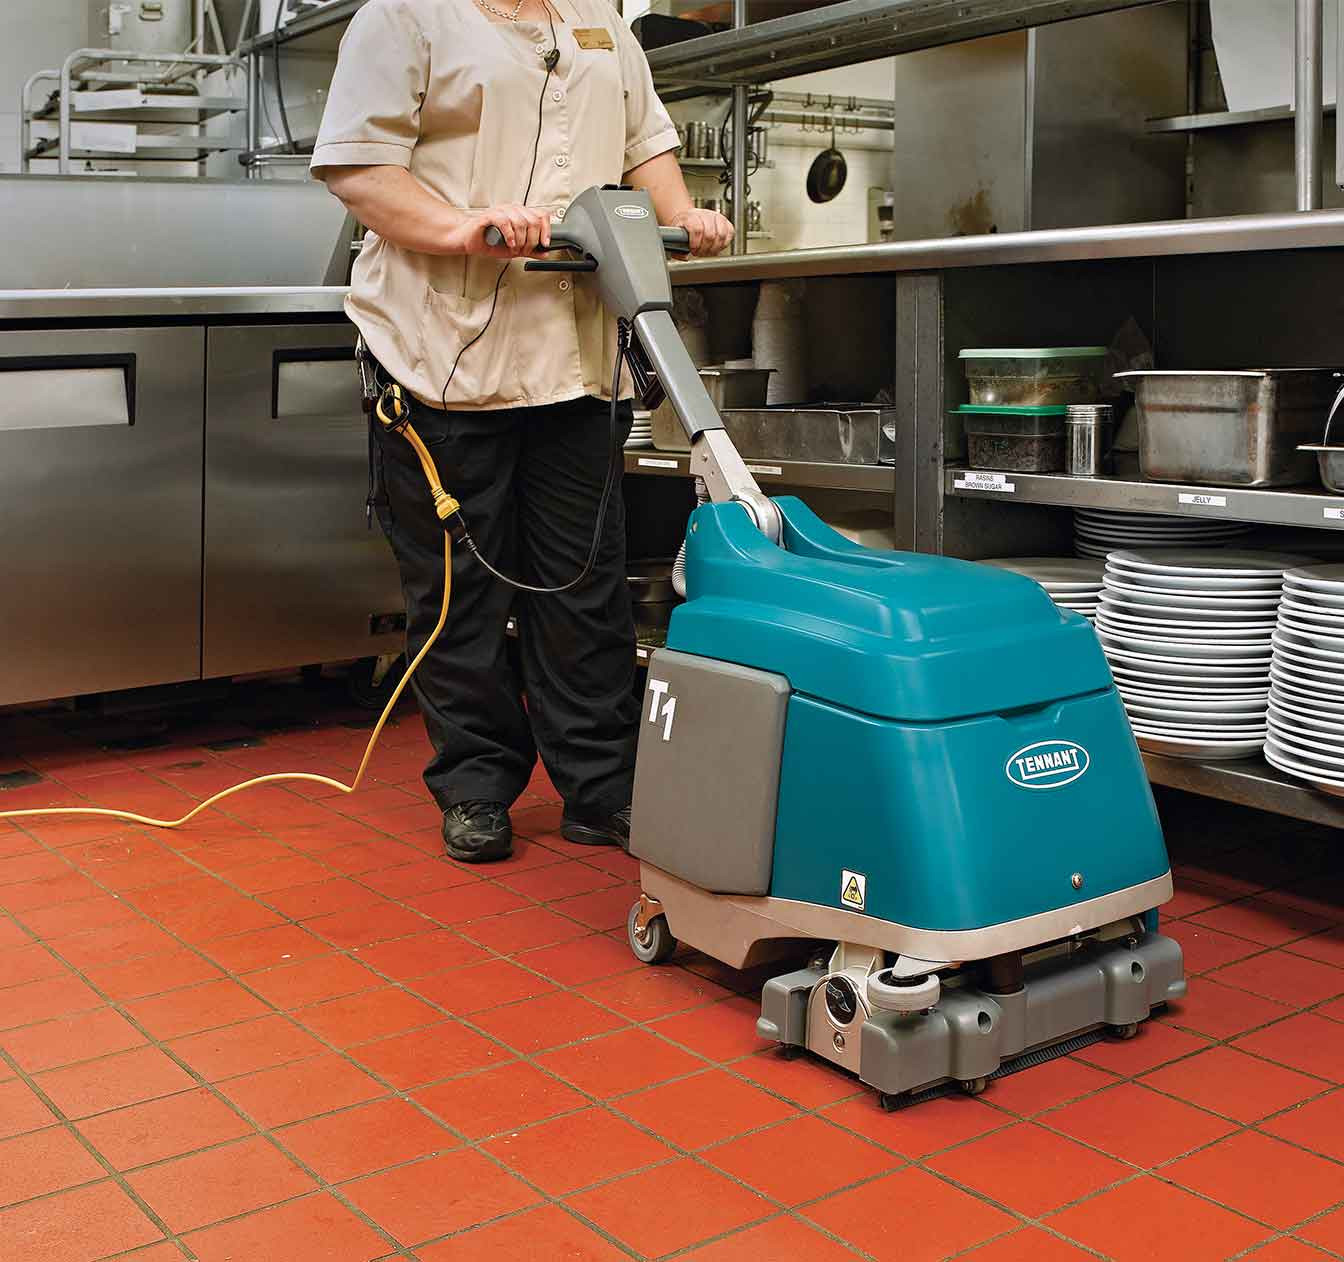 hardwood floor steam cleaner rental of t1 walk behind micro scrubber tennant company pertaining to maintain health safety